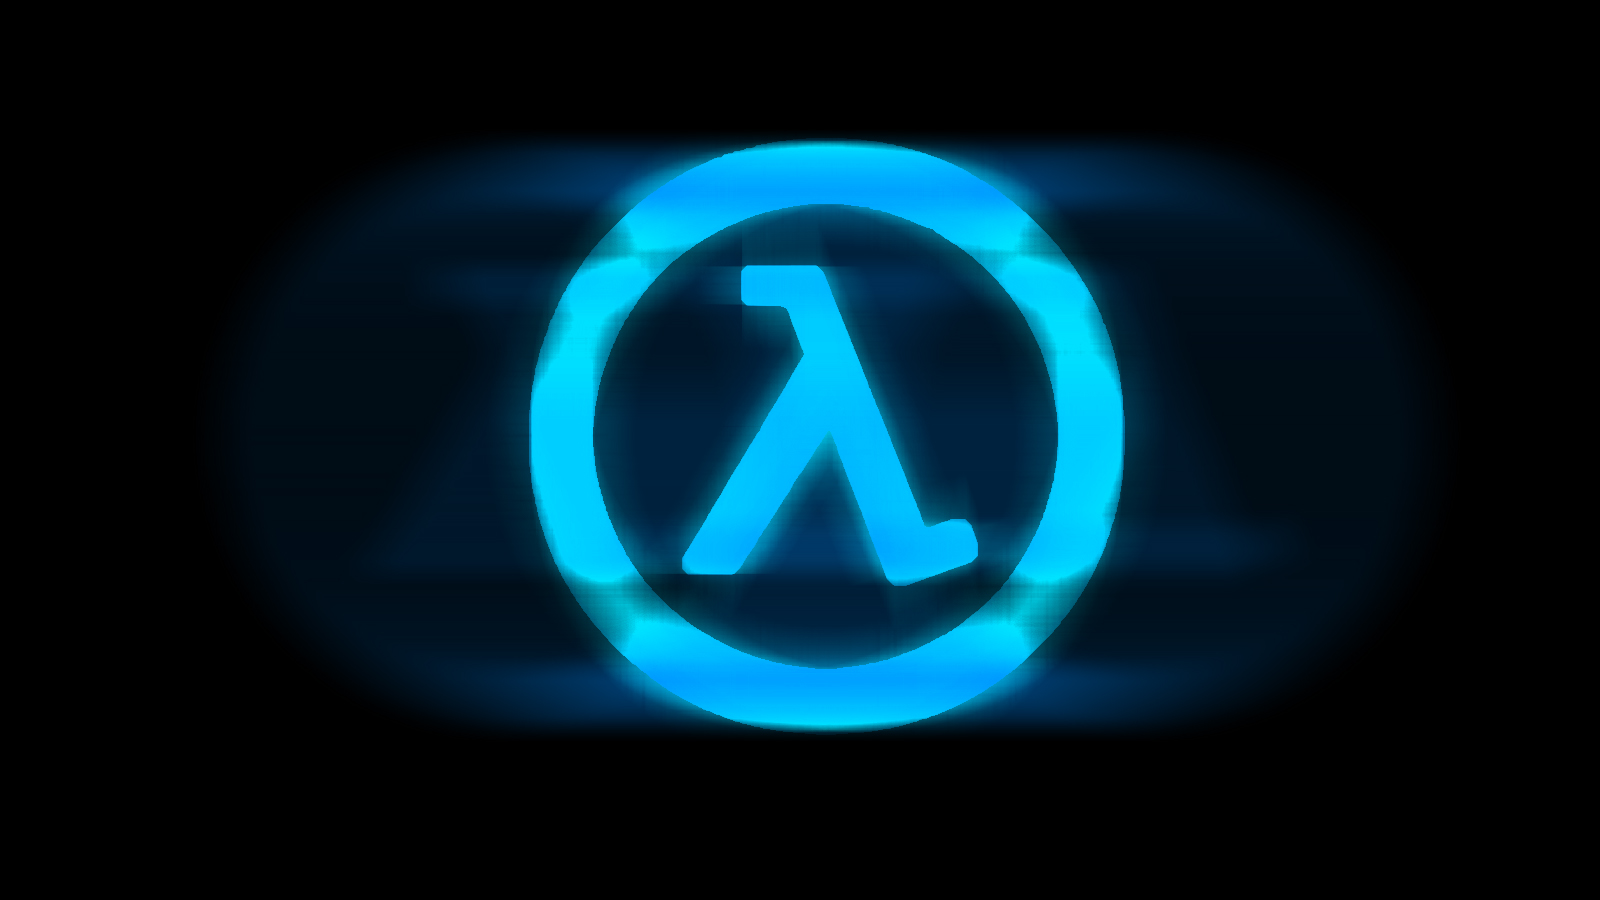 Half Life Logo Wallpaper HD